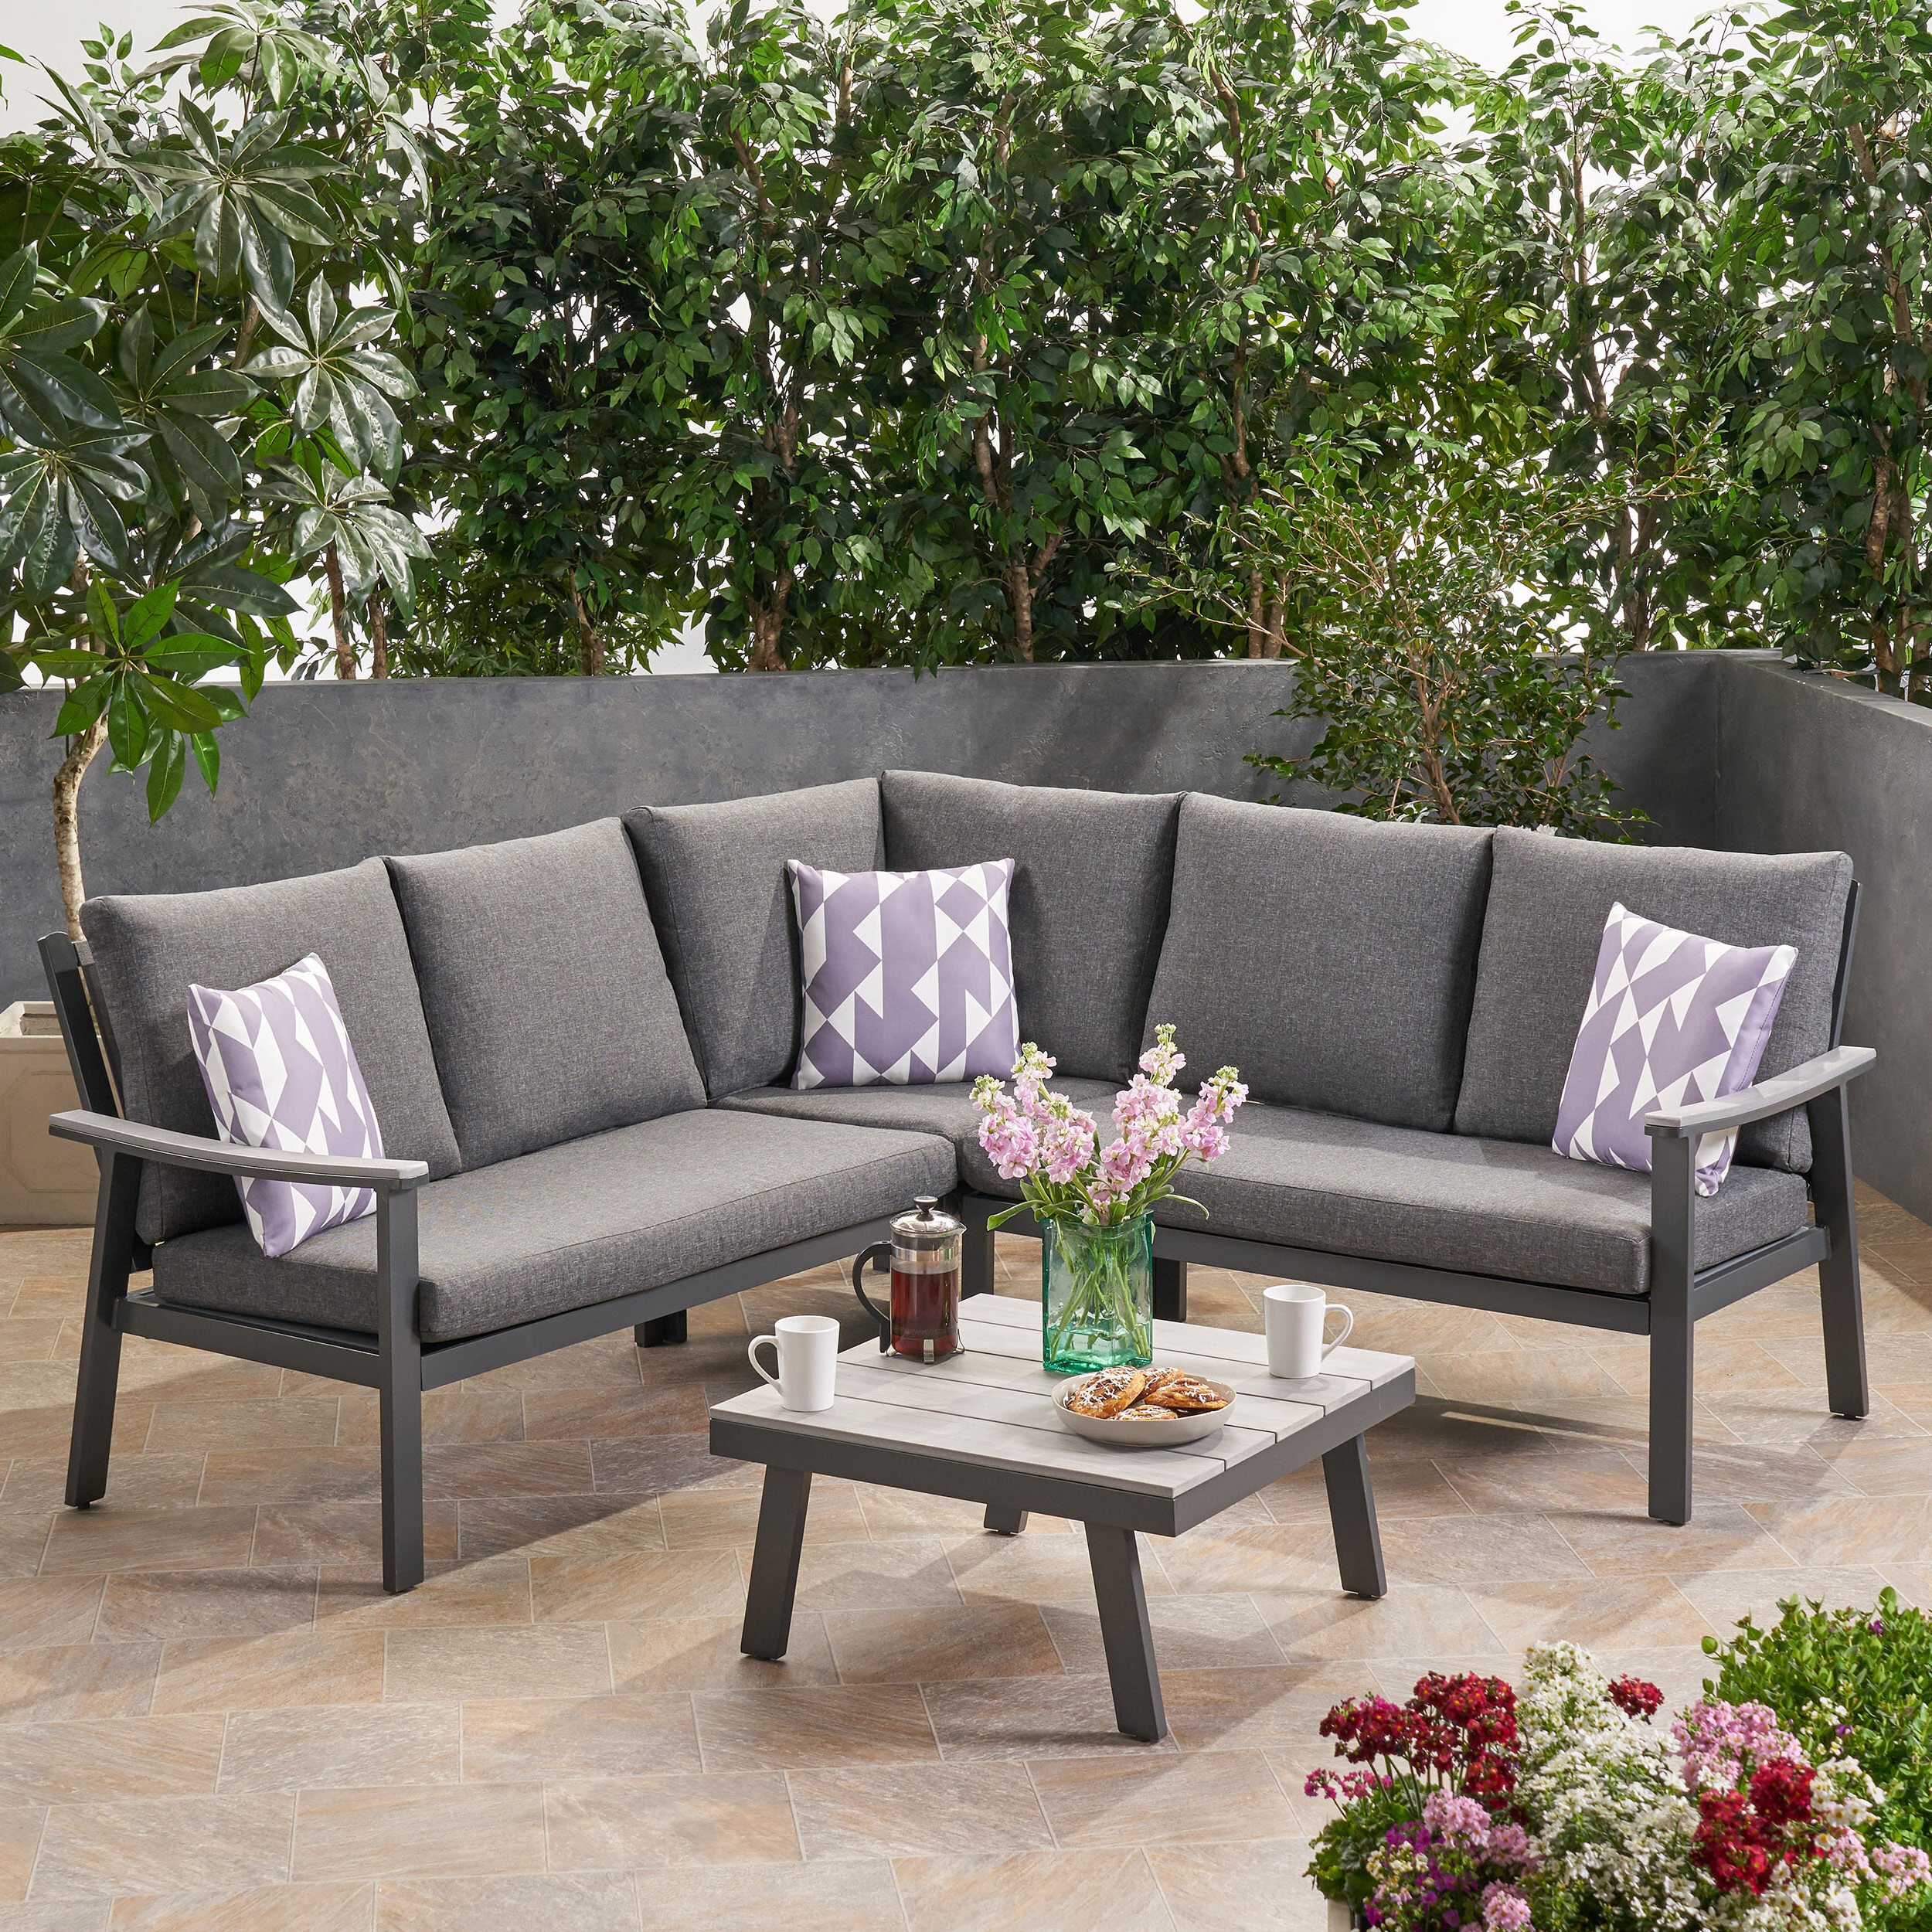 Latest Arocho Outdoor 4 Piece Sectional Seating Group With Cushions Pertaining To Jimmie 3 Piece Sectionals Seating Group With Cushions (View 12 of 25)